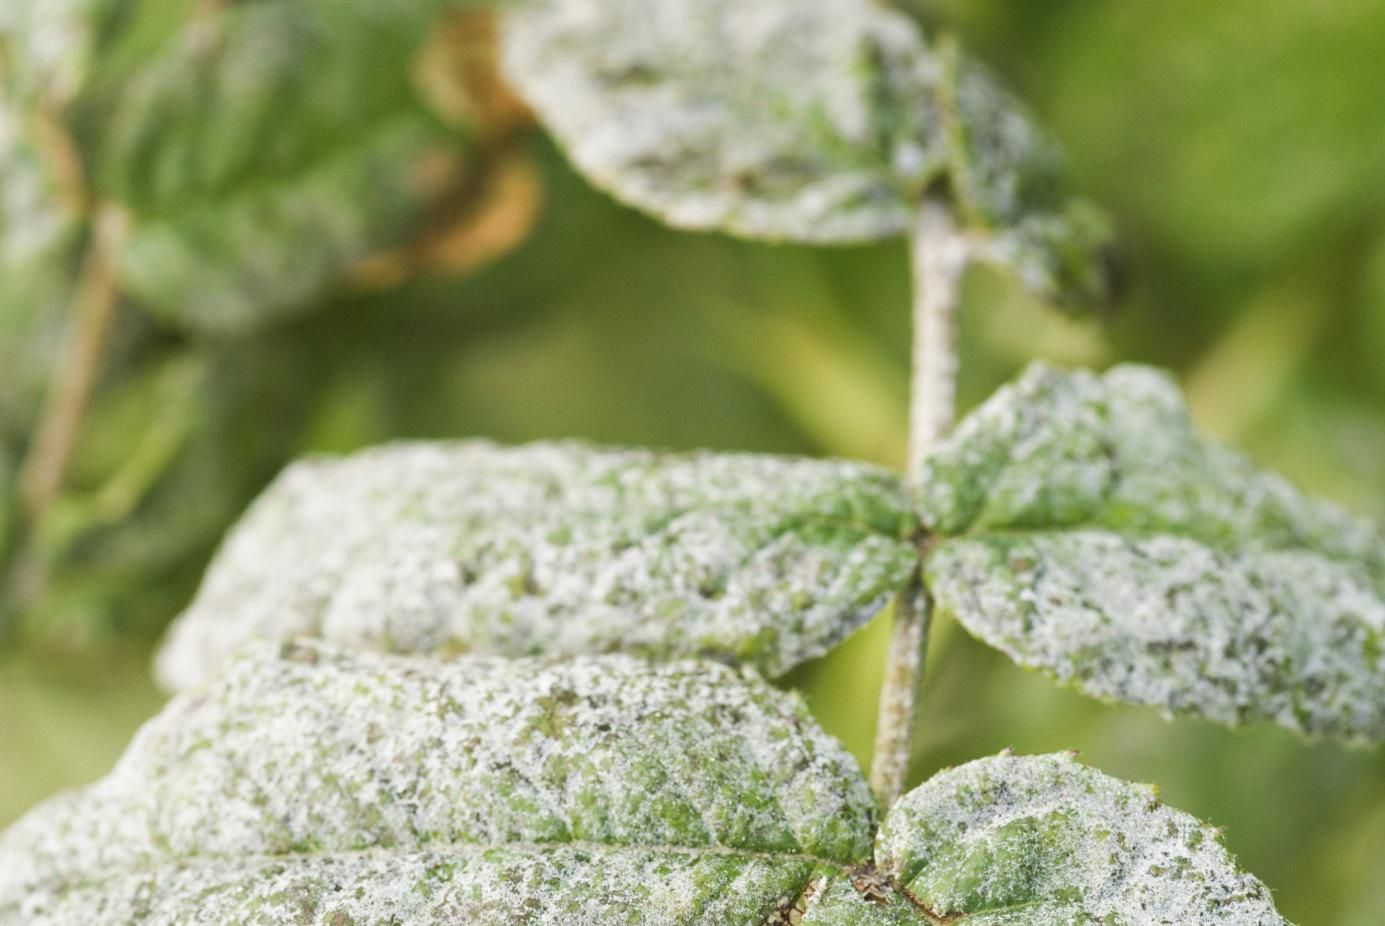 Baking Soda Recipe For Controlling Mildew On Plants